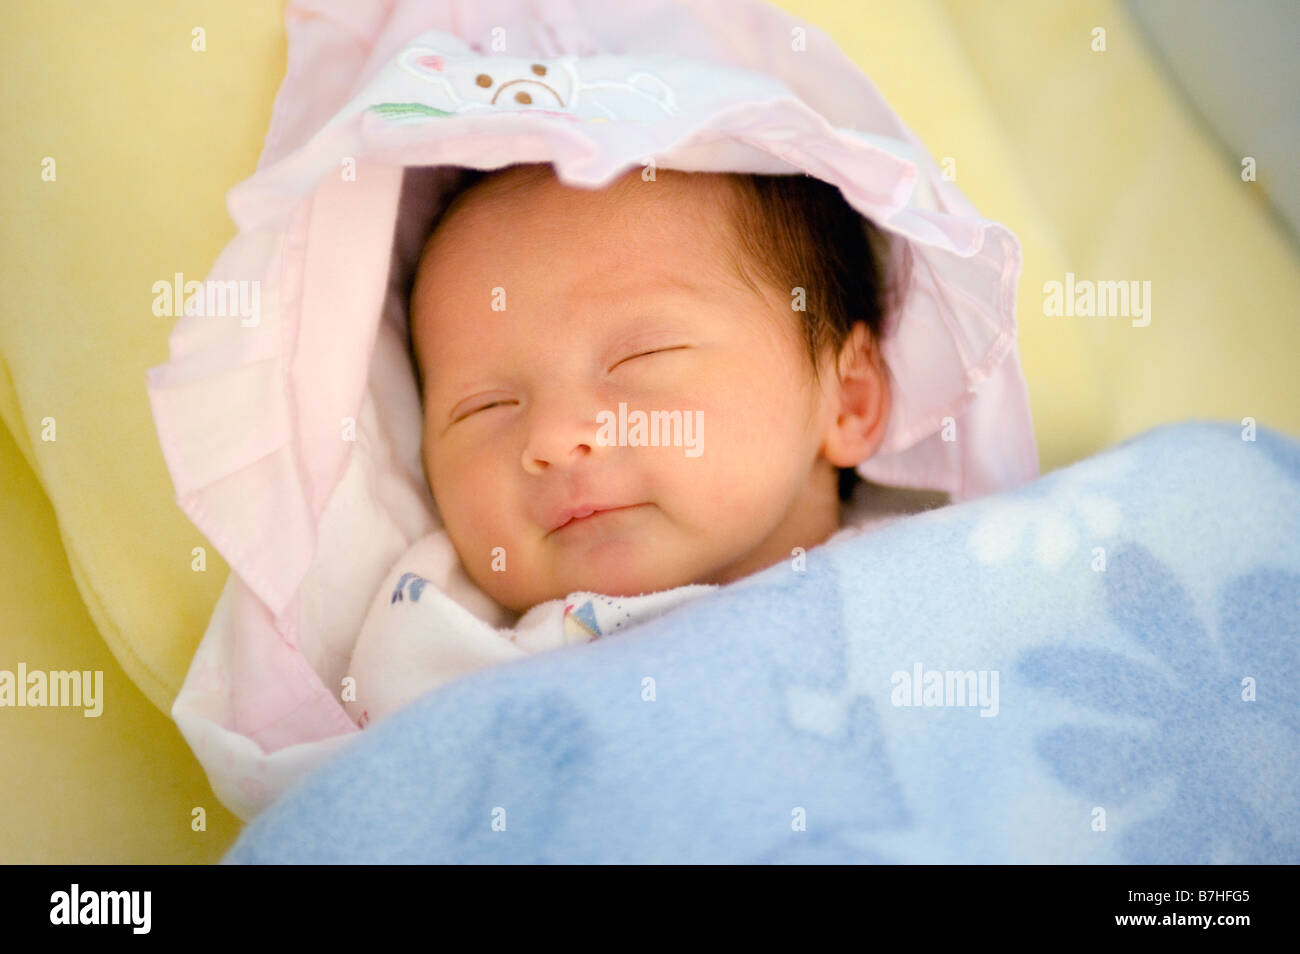 176b806a7422 Portrait of a 1 week old newborn baby girl sleeping peacefully and ...